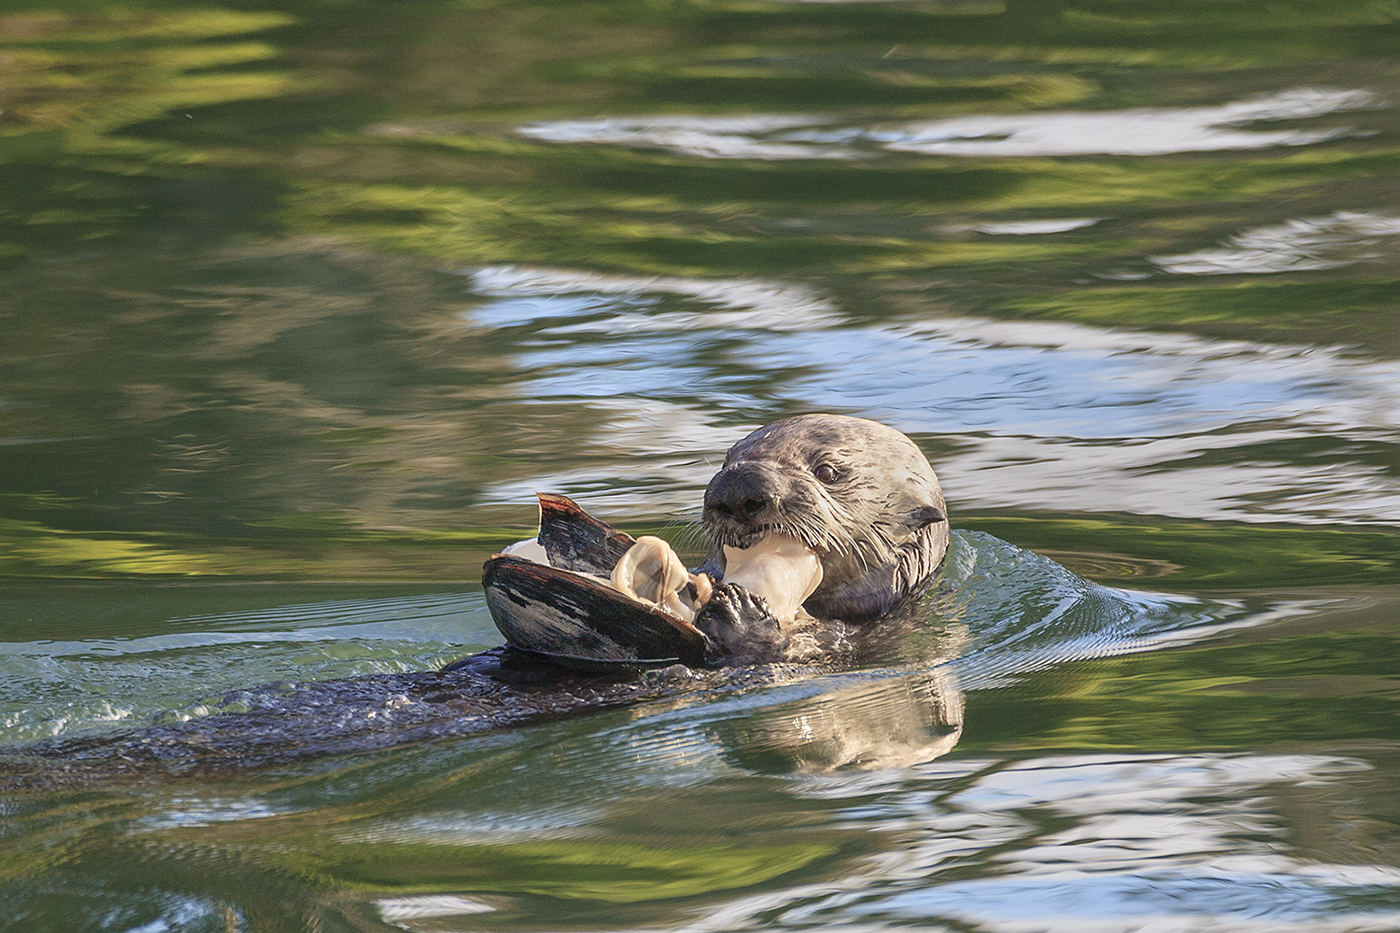 Otter In The Water, Eating Fish Stock Image - Image of ... |Sea Otters Eating Bears